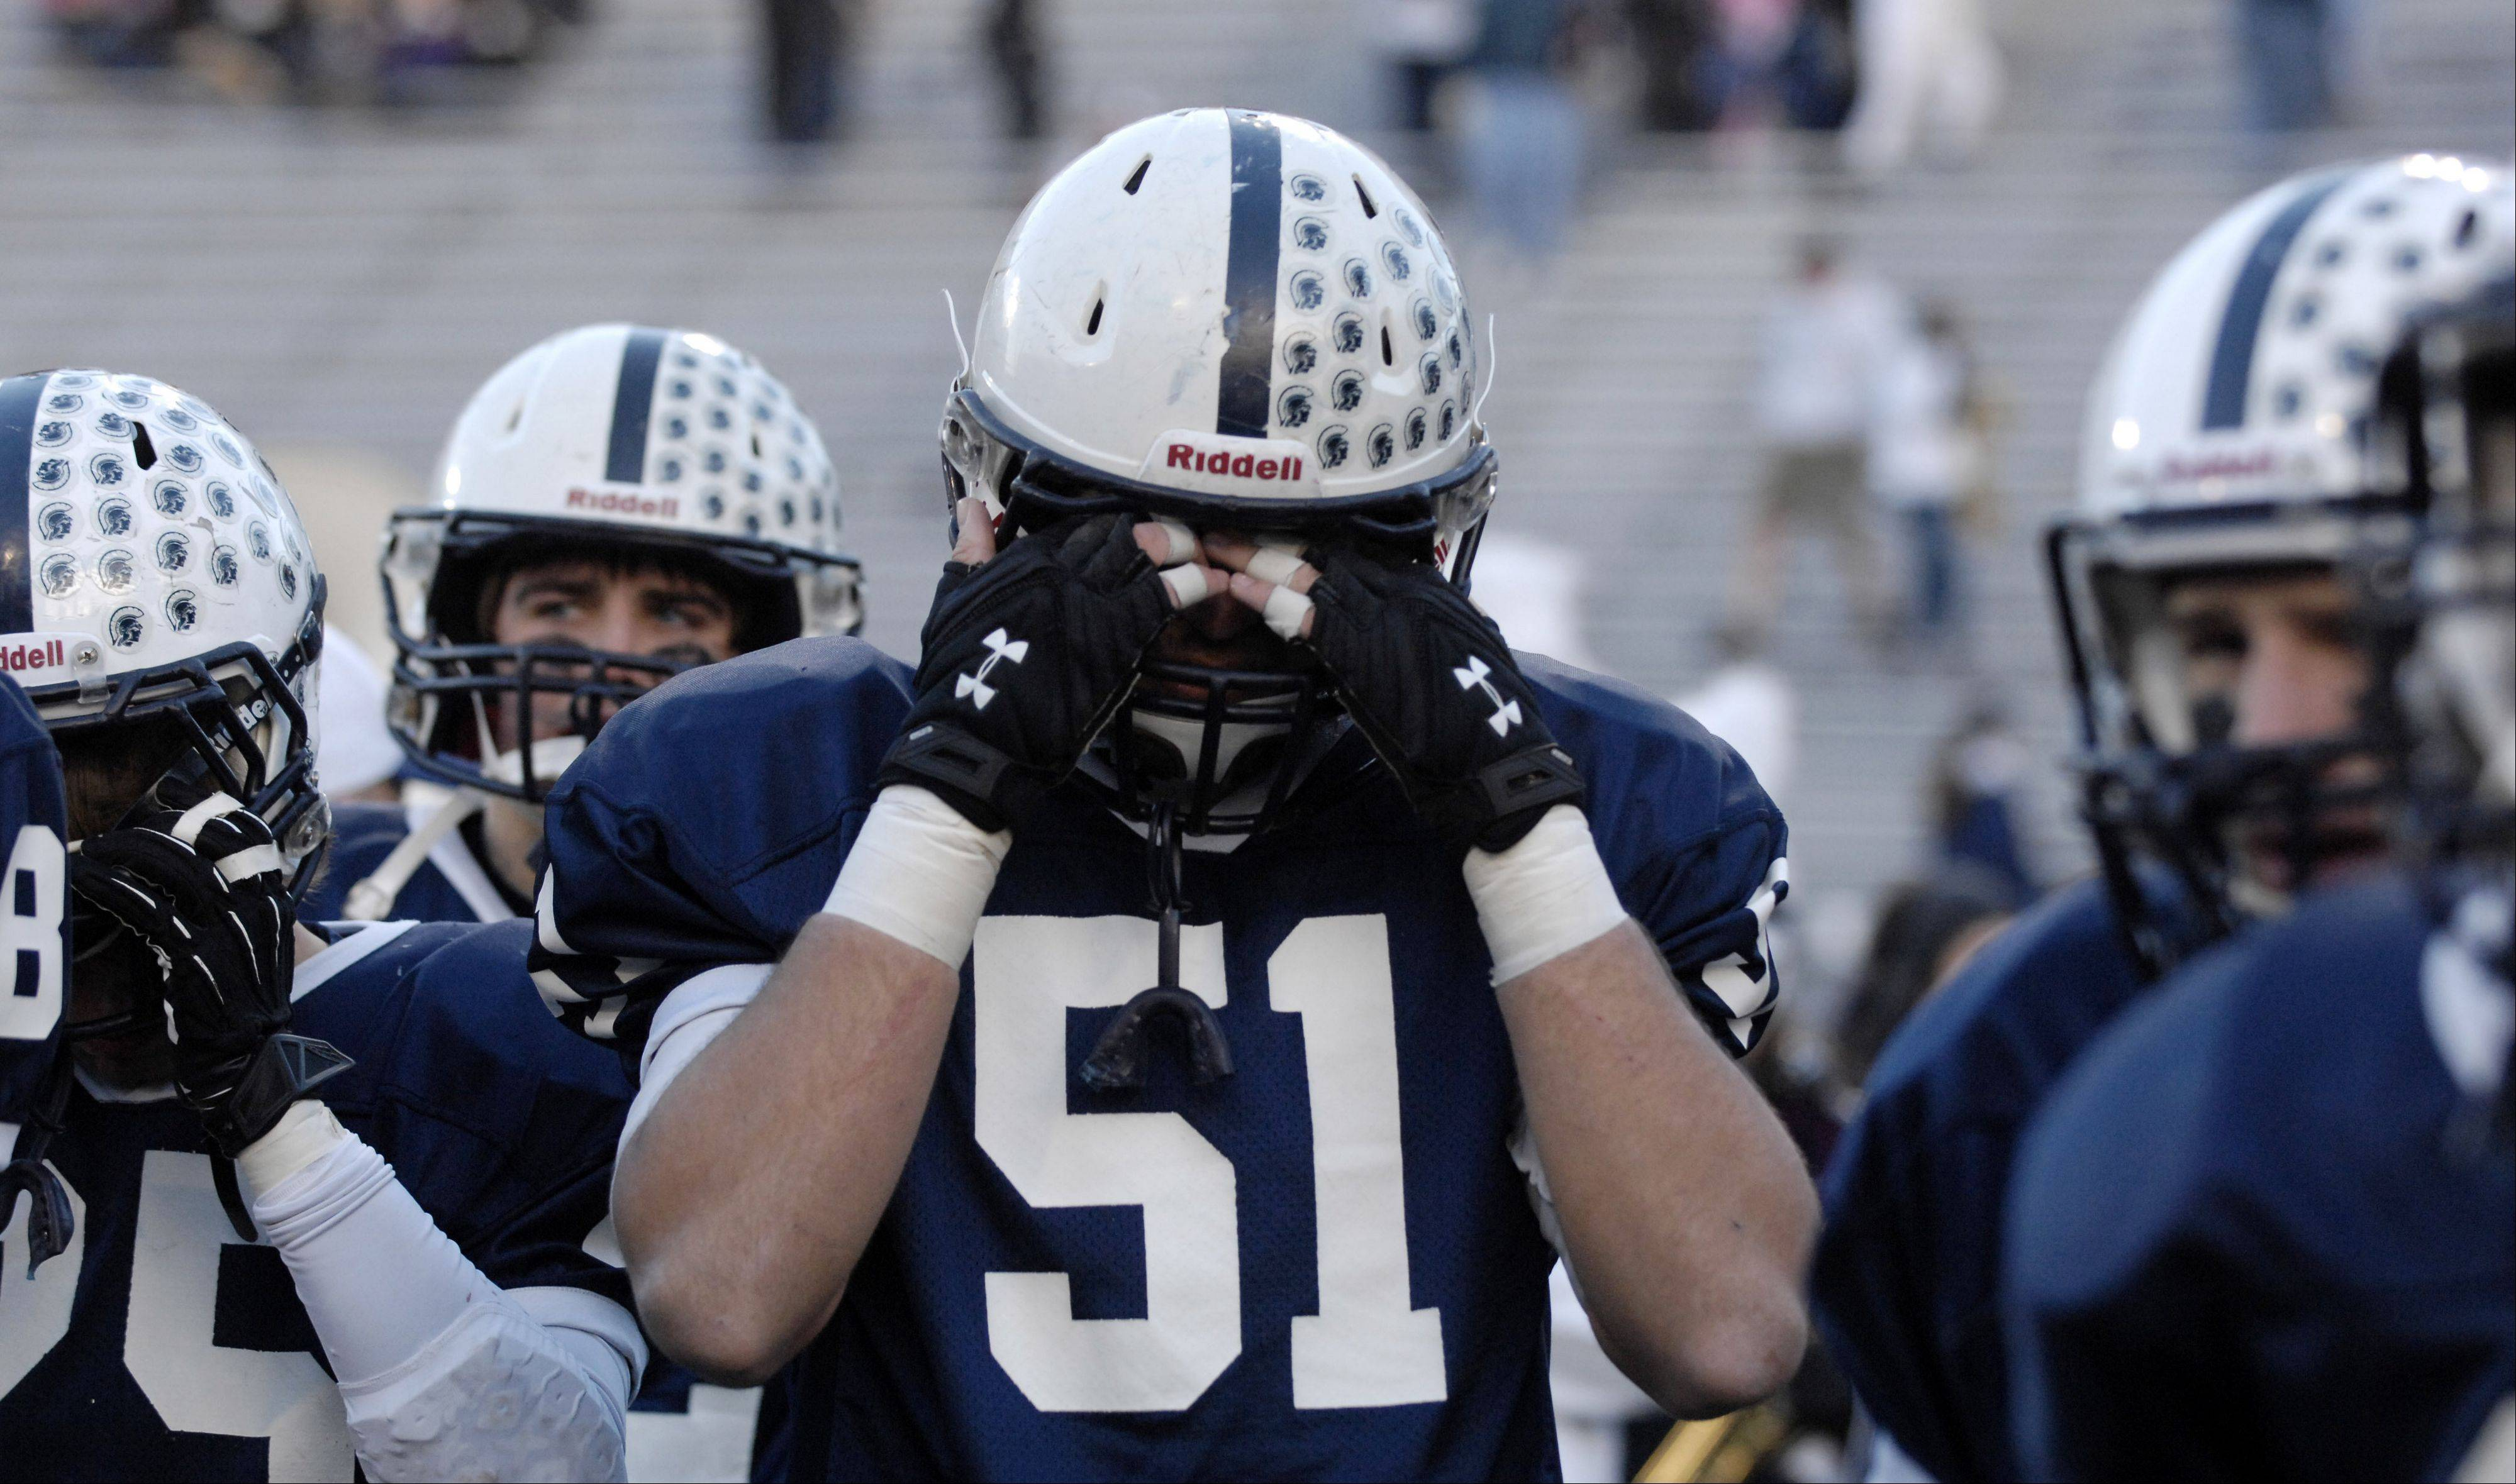 Cary-Grove�s Kyle Matthiesen (51) and his teammates react to their 33-26 loss to Crete-Monee in Saturday�s Class 6A state title game at Memorial Stadium in Champaign.